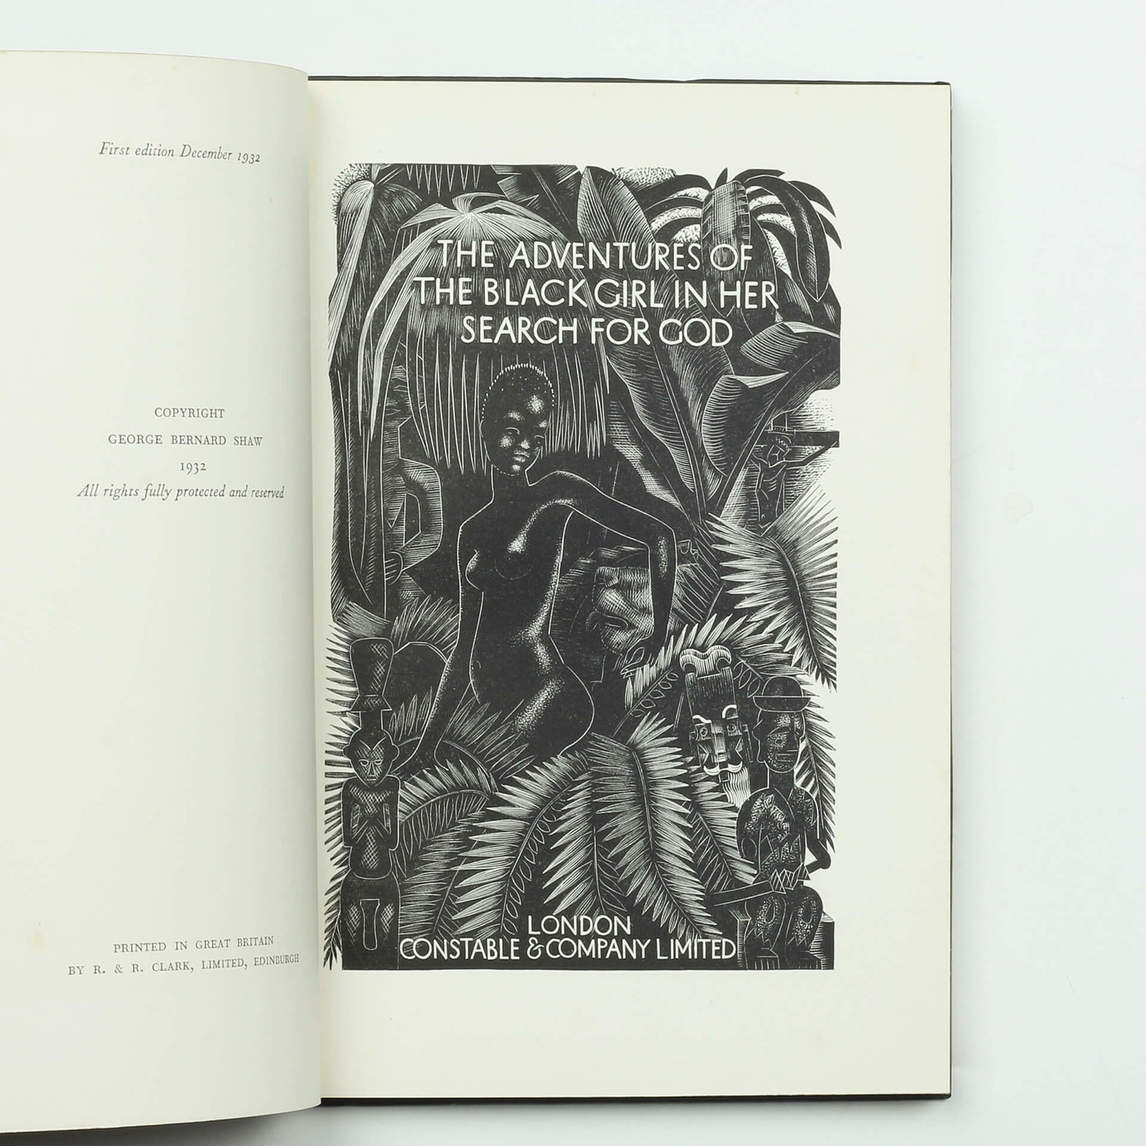 Art Canada Institute, original cover, George Bernard Shaw's The Adventures of the Black Girl in Her Search for God, 1932, illustrations by John Farleigh